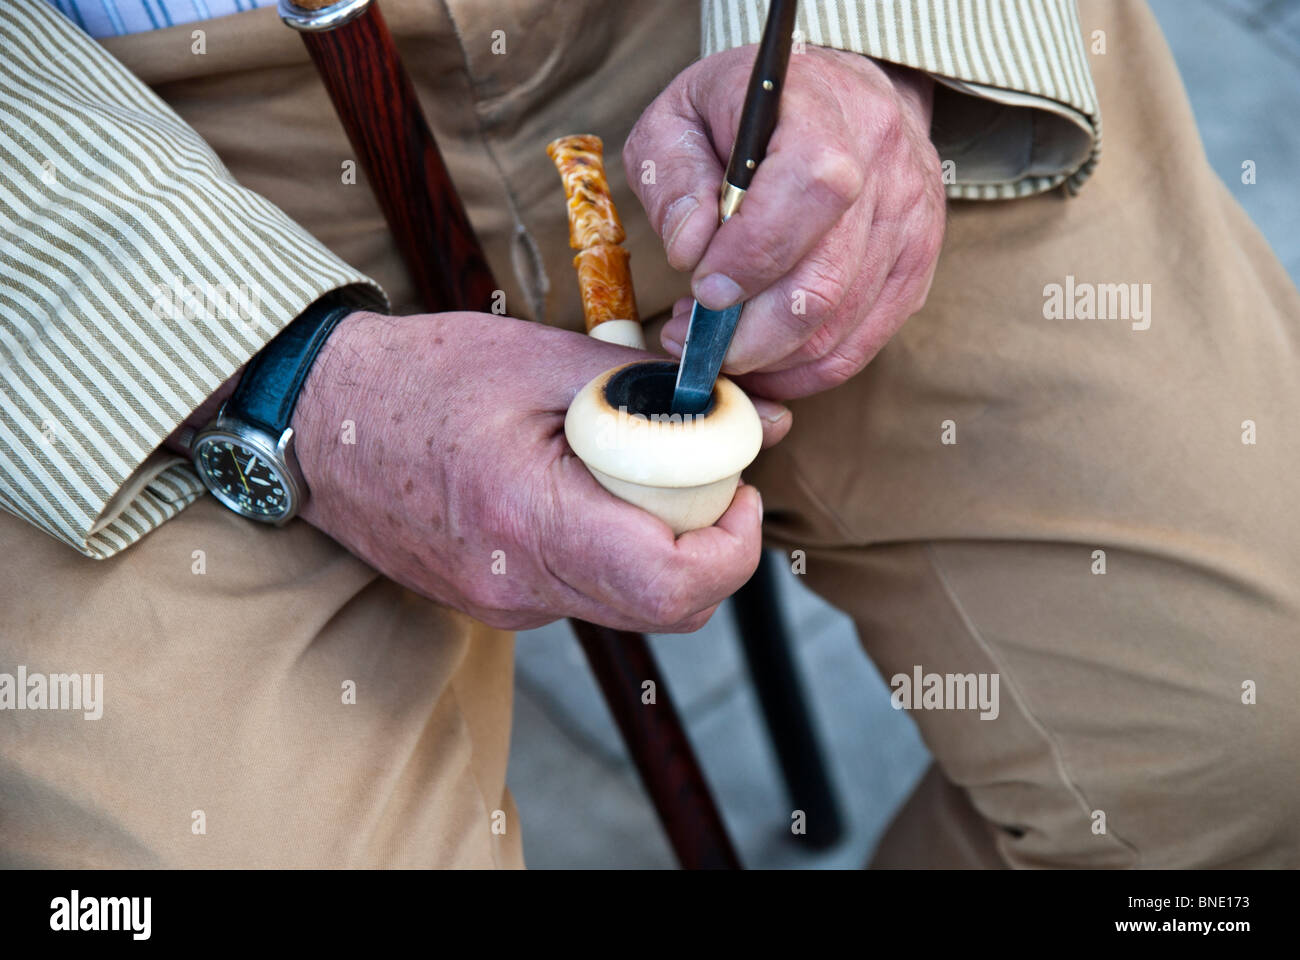 PIPE SMOKER FİLL IN HIS PIPE - Stock Image